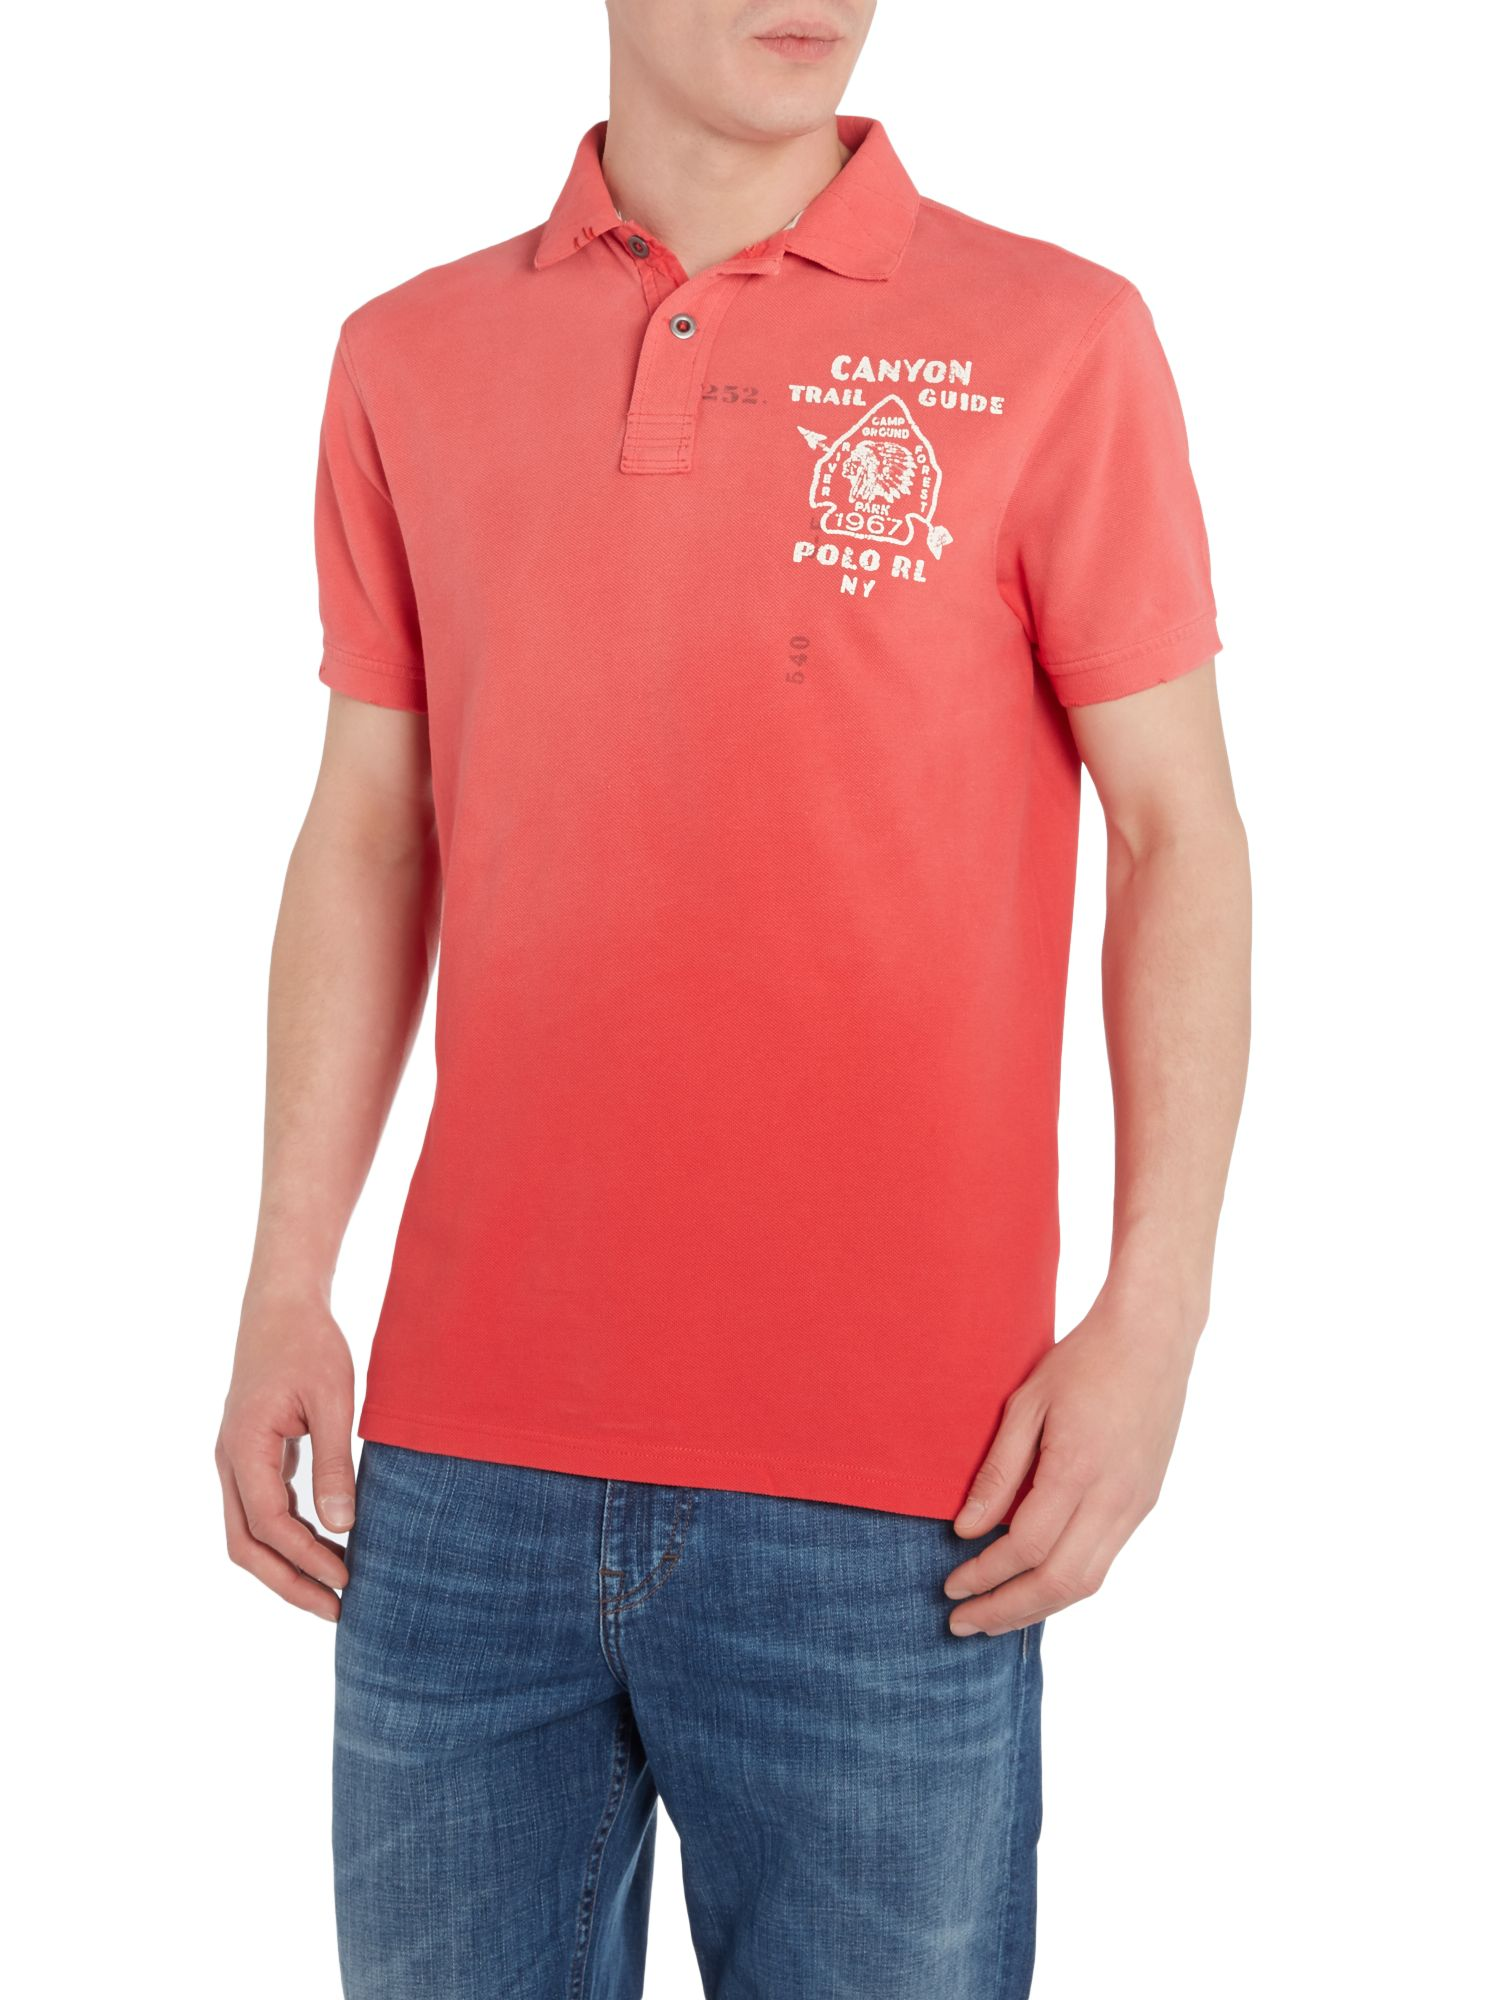 Ralph Lauren custom fit polo shirt